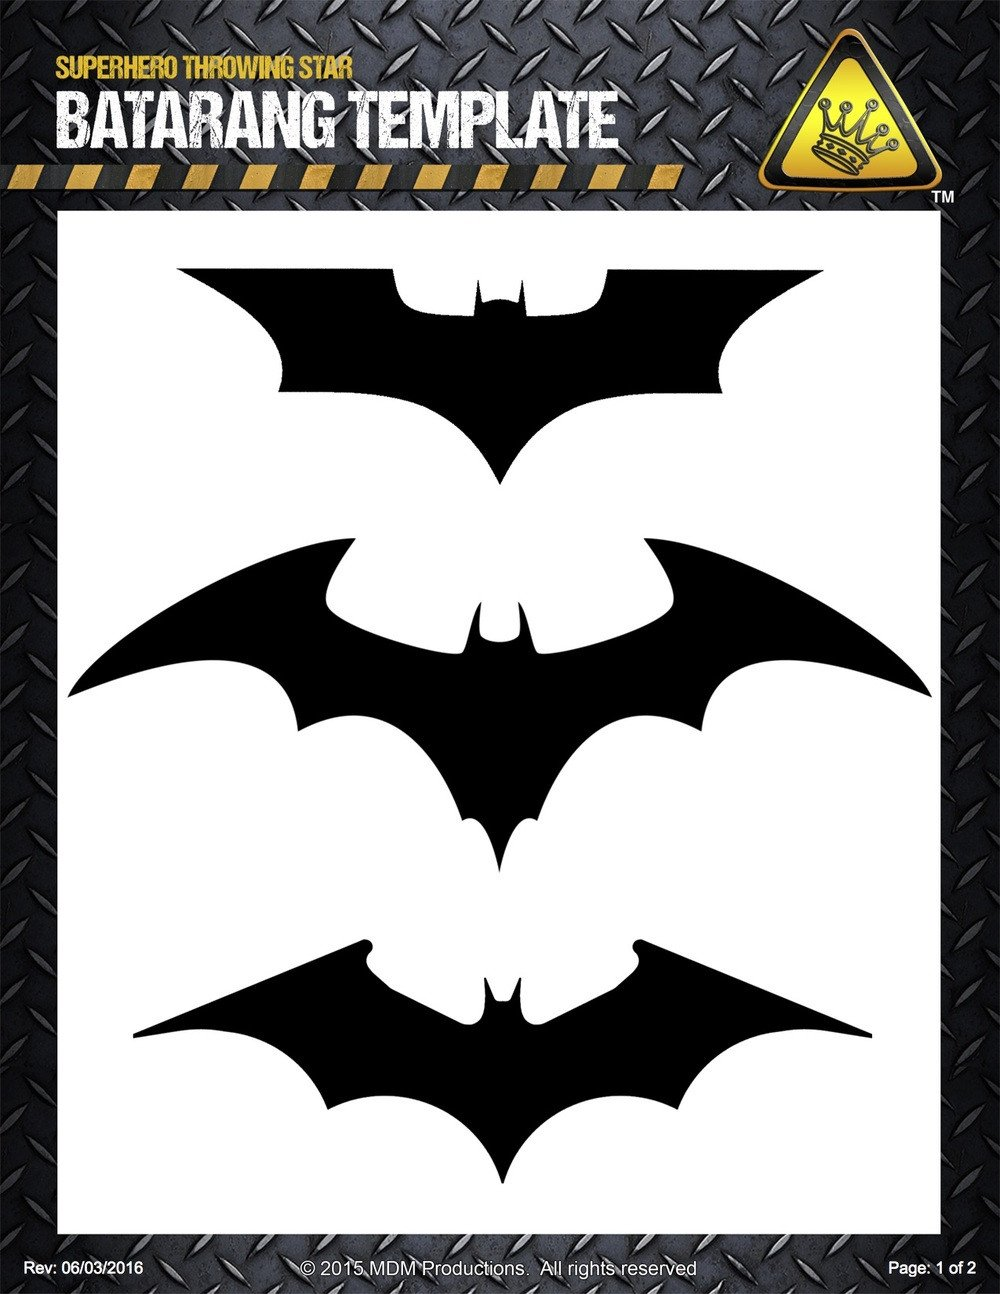 Batarang Template Pdf Project Pdfs — the King Of Random